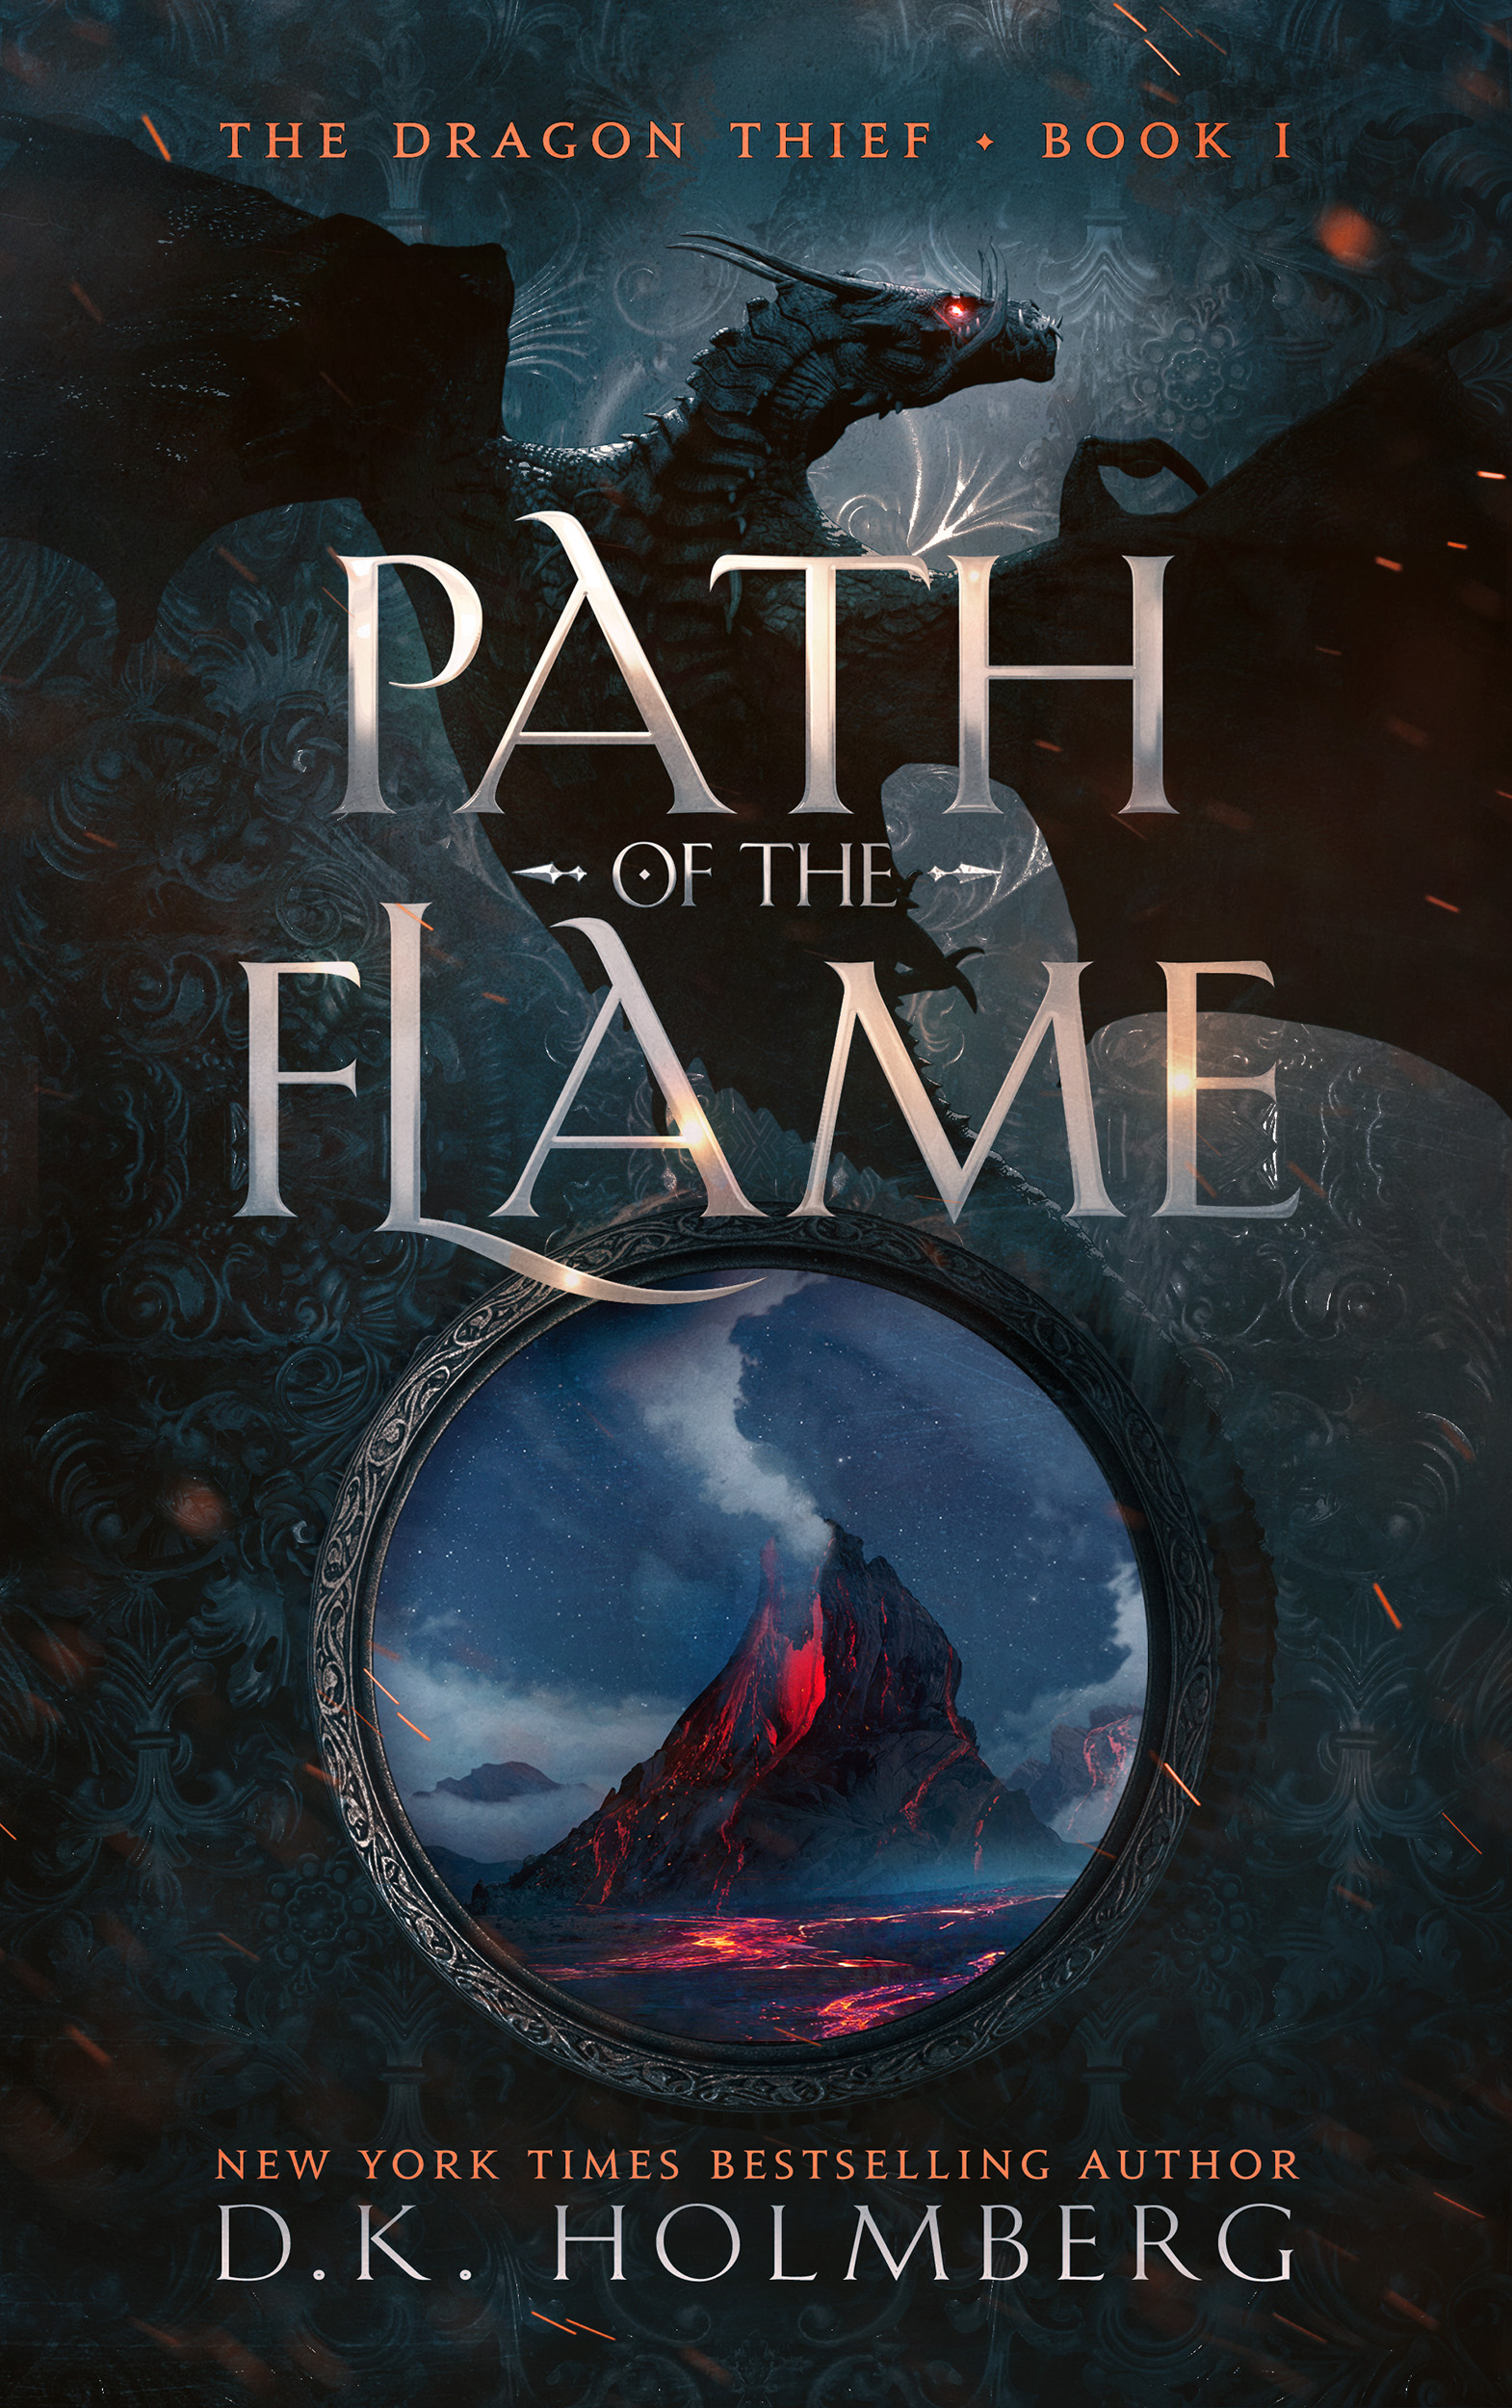 https://www.dkholmberg.com/wp-content/uploads/2021/07/Path-of-the-Flame-eBook-Small.jpg